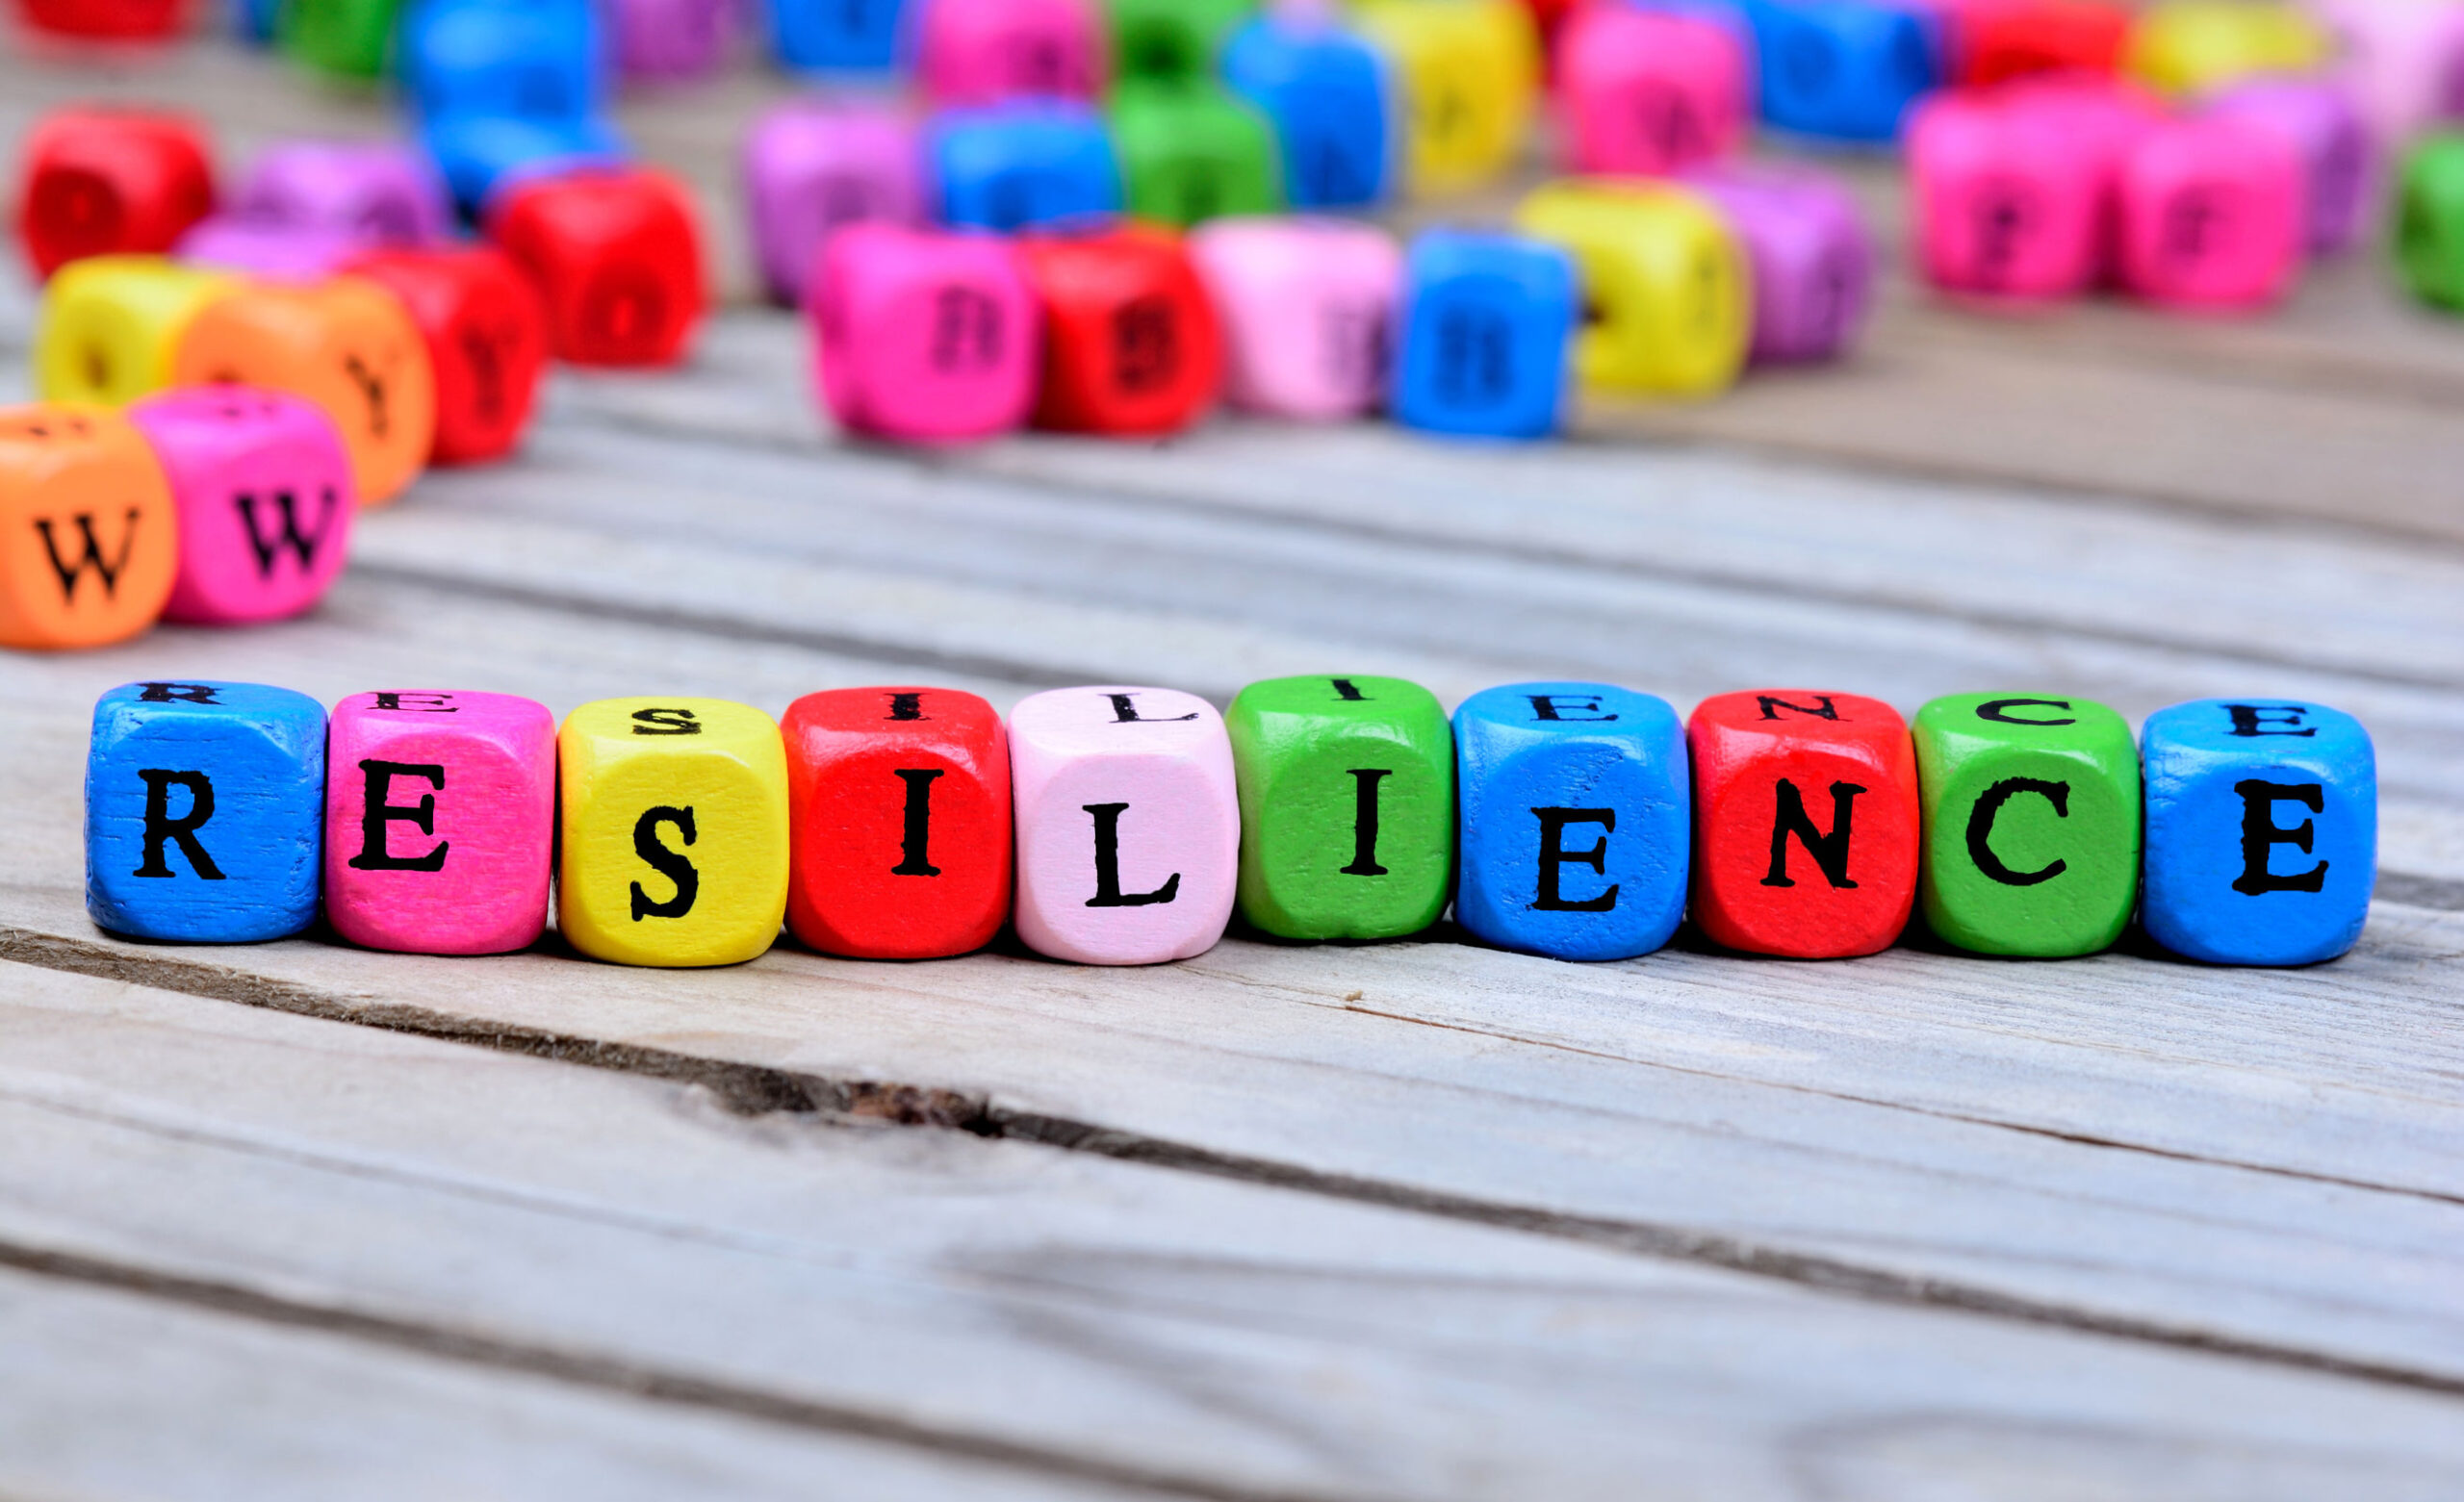 Resilience word on table